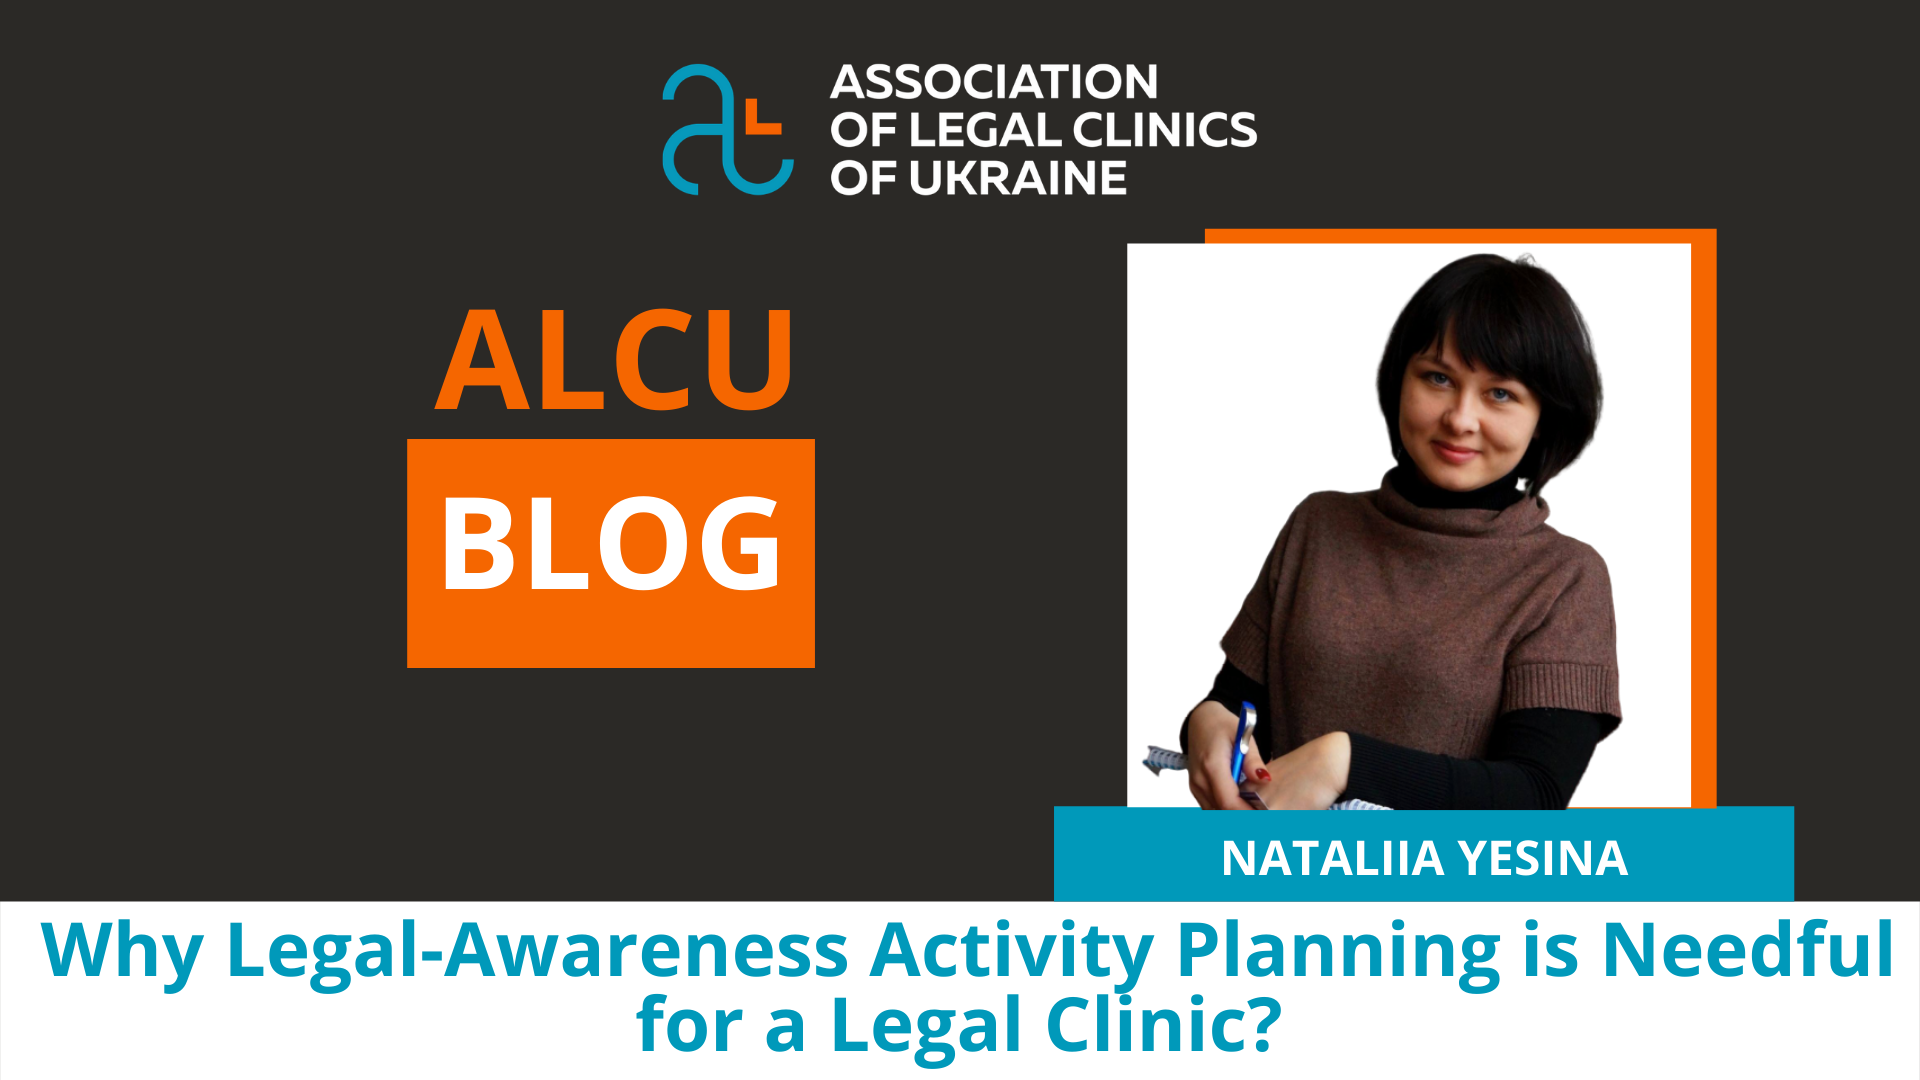 Why the Planning of Legal Activities is Necessary for a Legal Clinic?